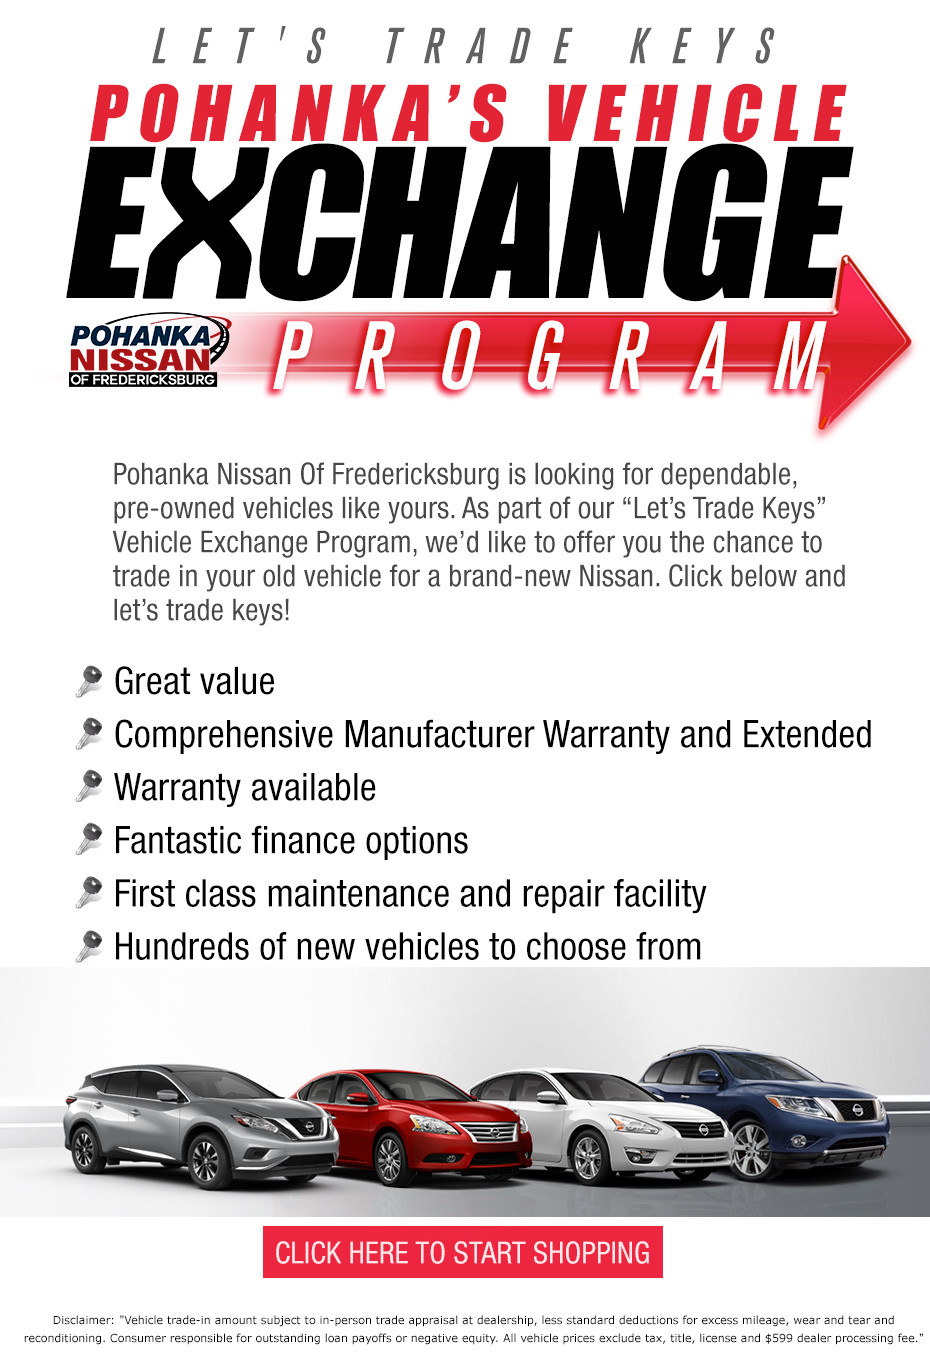 Pohanka Vehicle Exchange Program - Pohanka Nissan of Fredericksburg